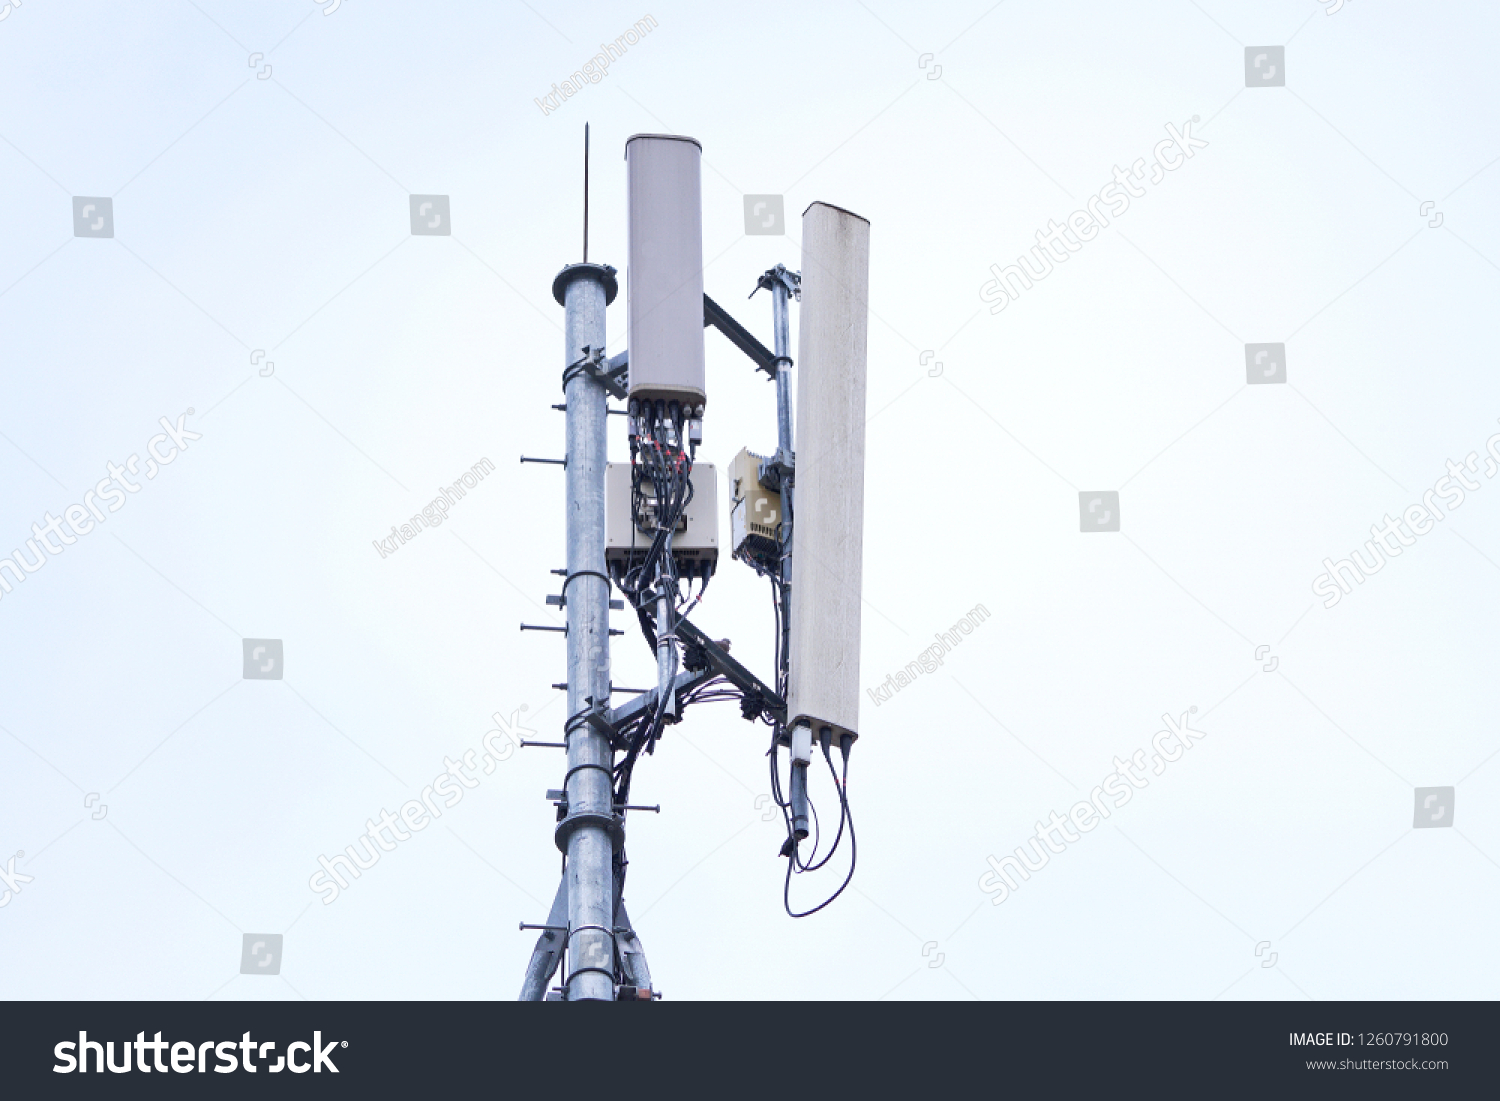 hight resolution of 3g 4g and 5g cell site base station or base transceiver station cell